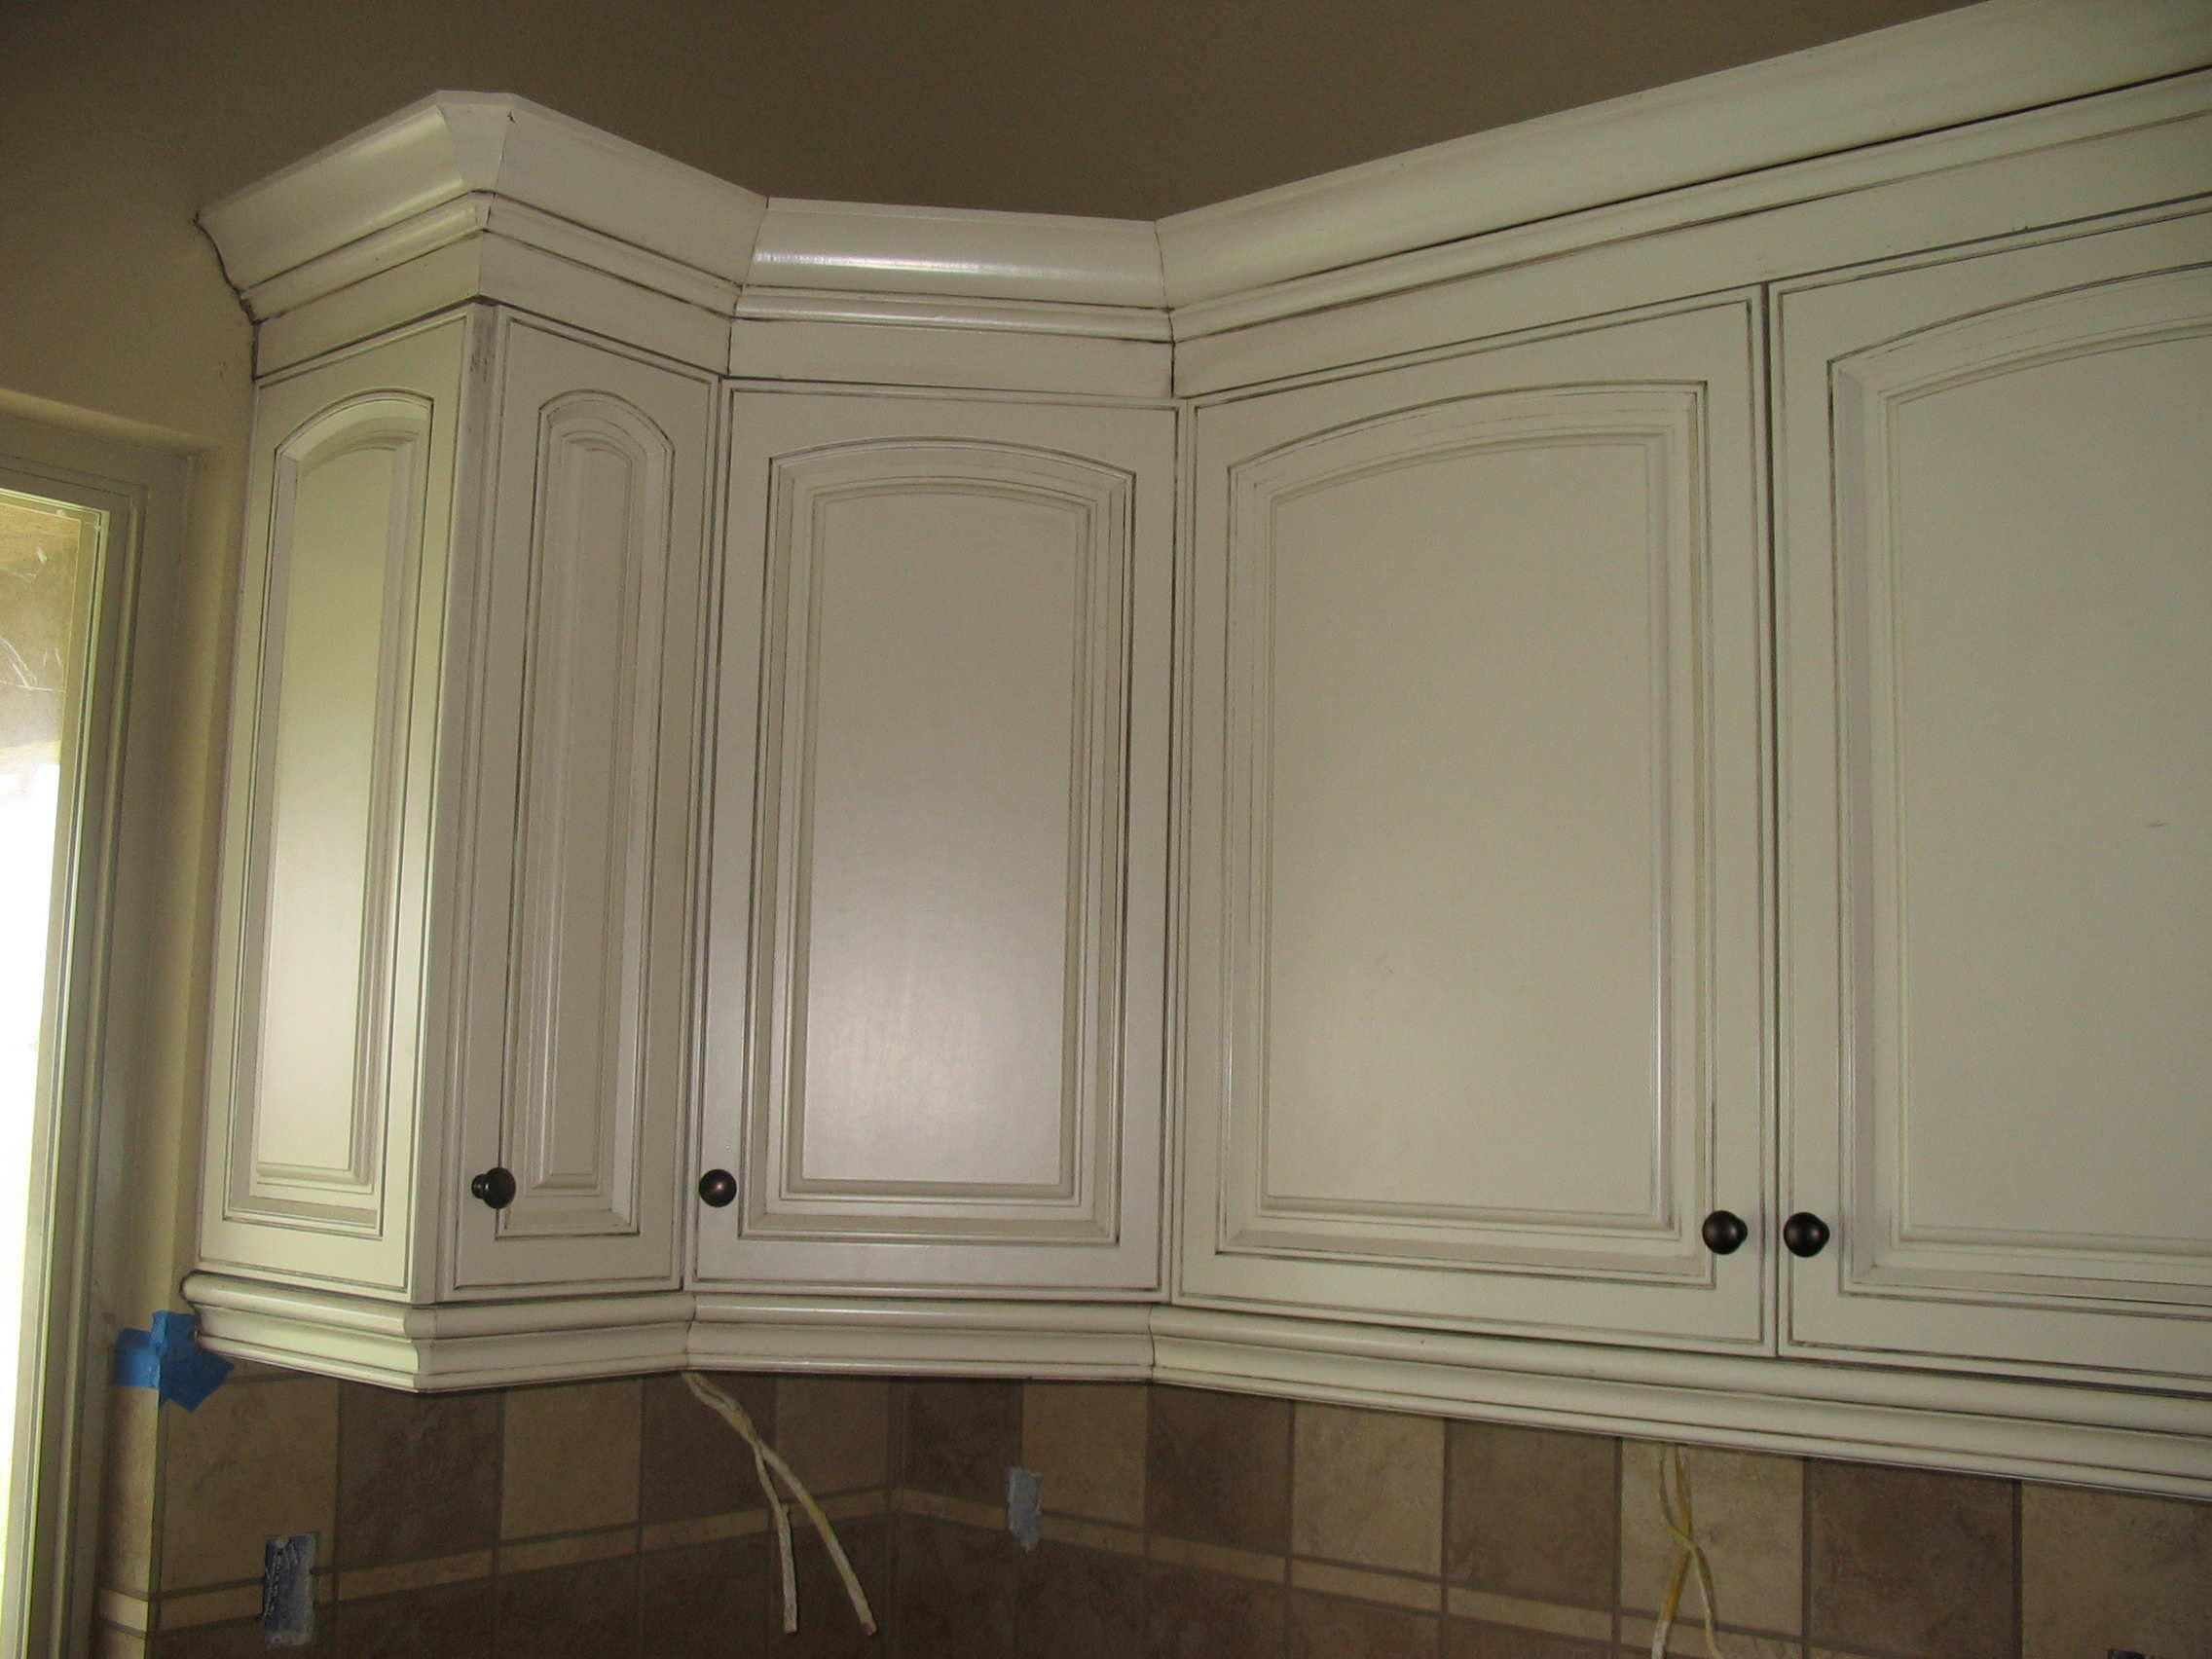 images of cabinets stained white | justdotchristina » blog archive